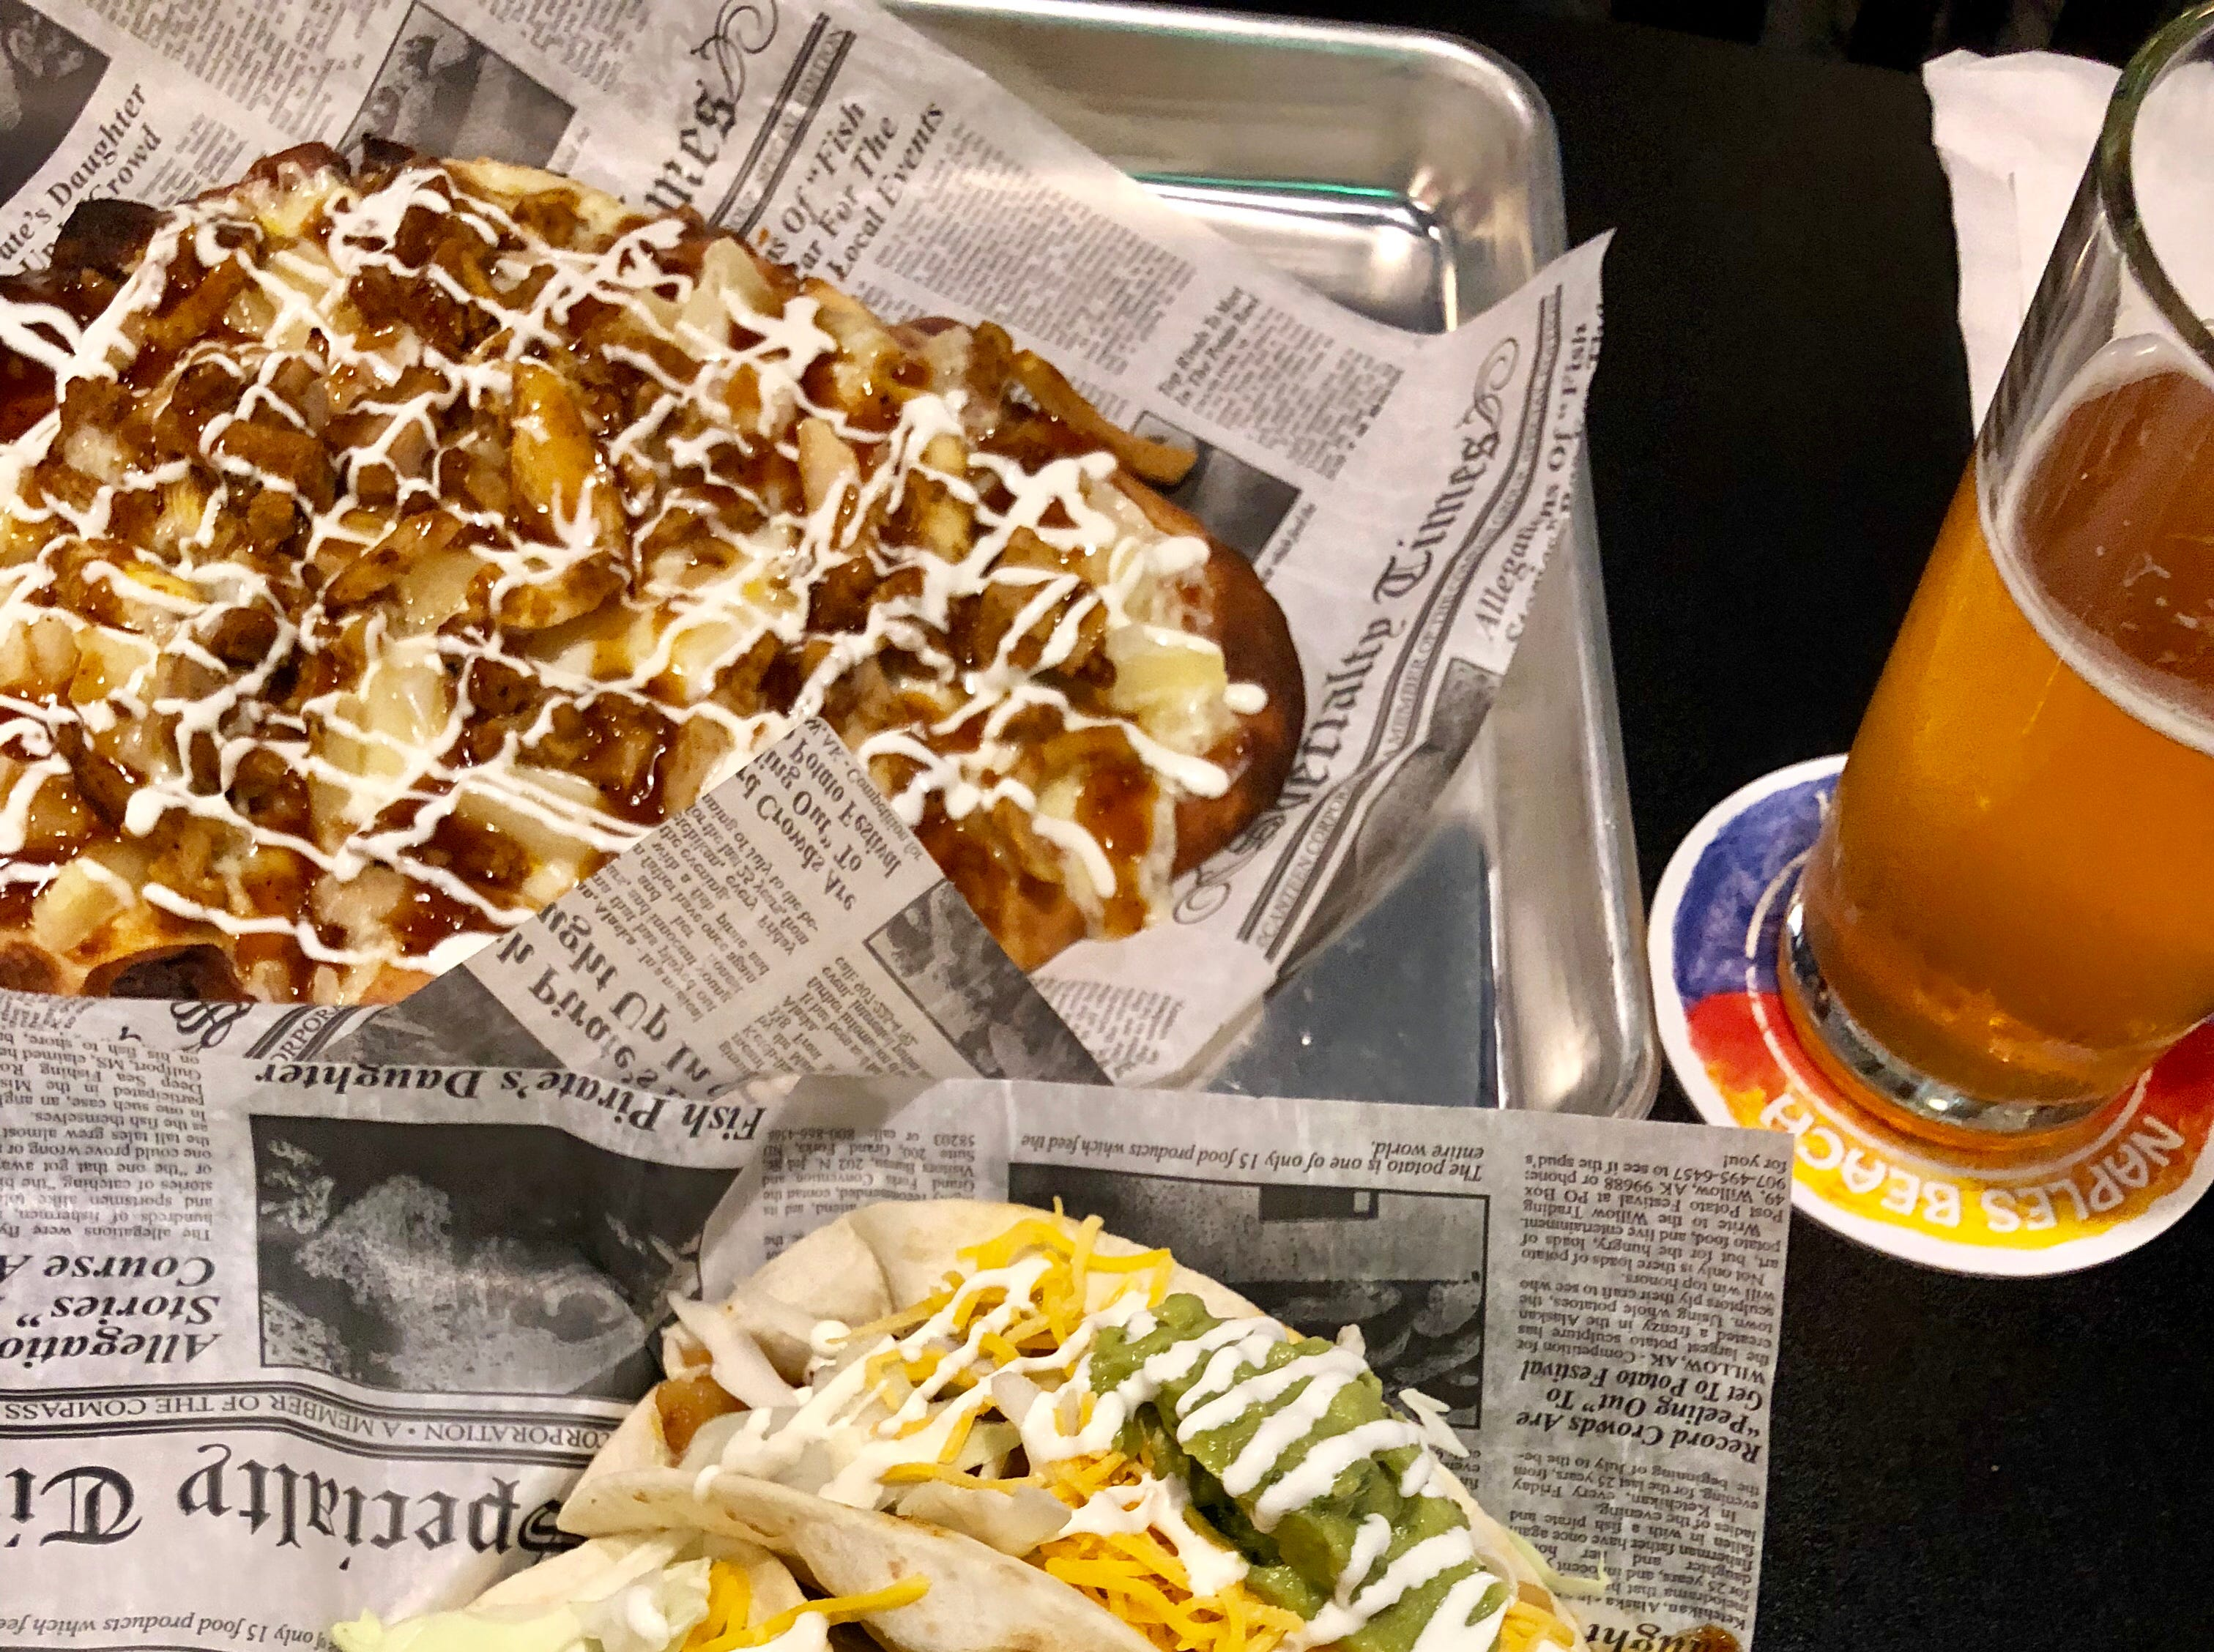 Barbacoa beef street tacos and Korean barbecue chicken flatbread from Southern Latitudes Brewpub in Naples.